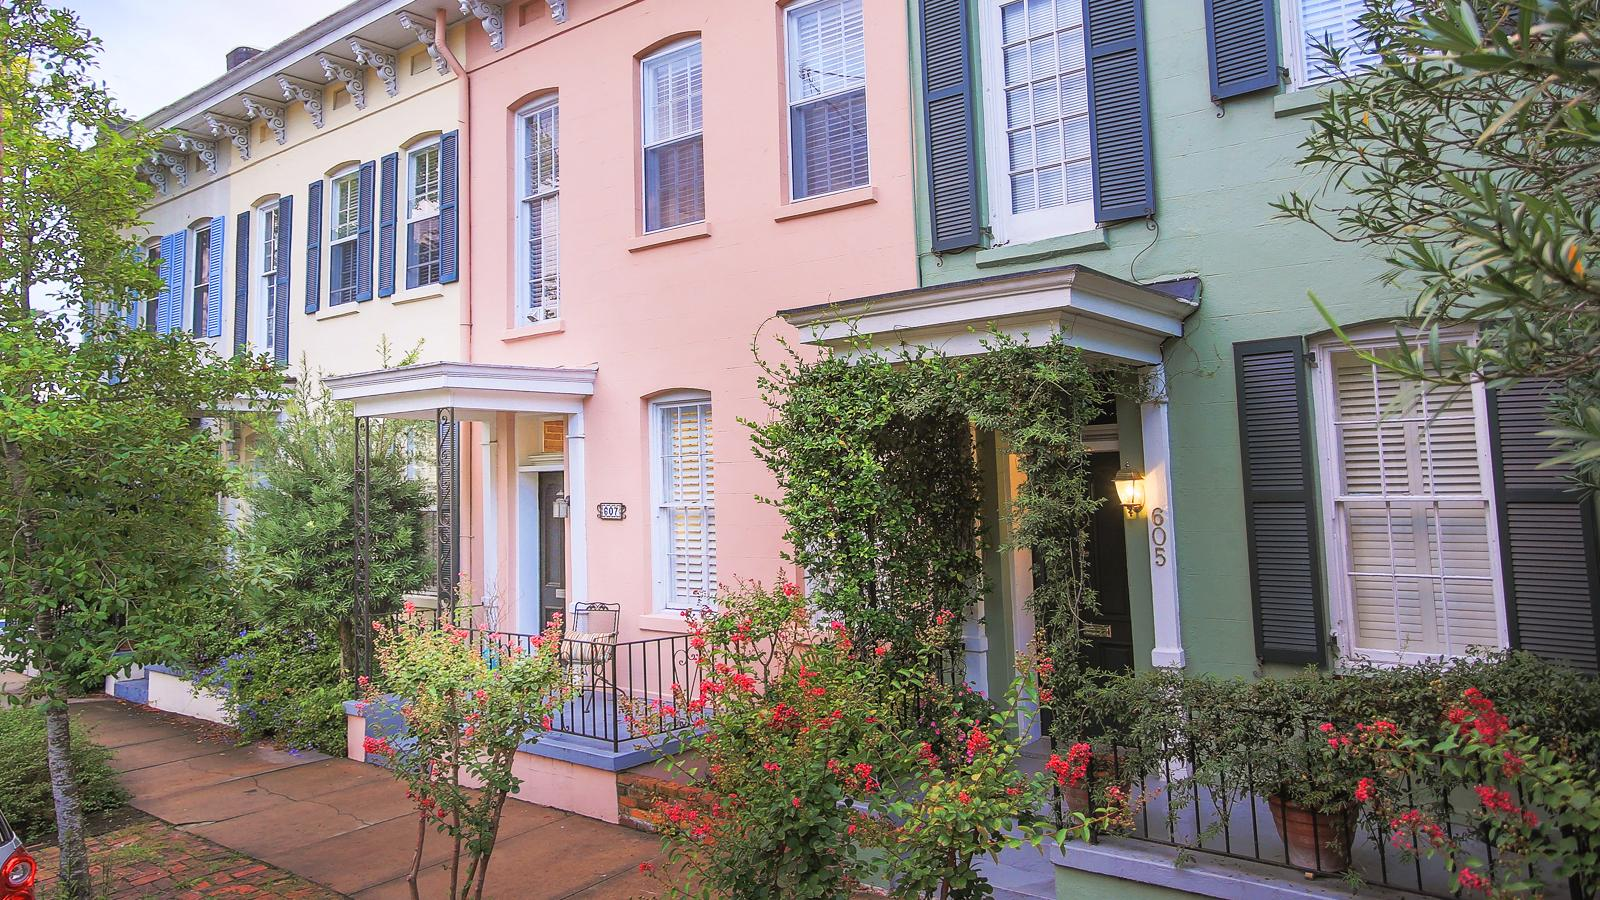 Peachy Best Vacation Rentals Savannah Ga Visit Savannah Download Free Architecture Designs Scobabritishbridgeorg